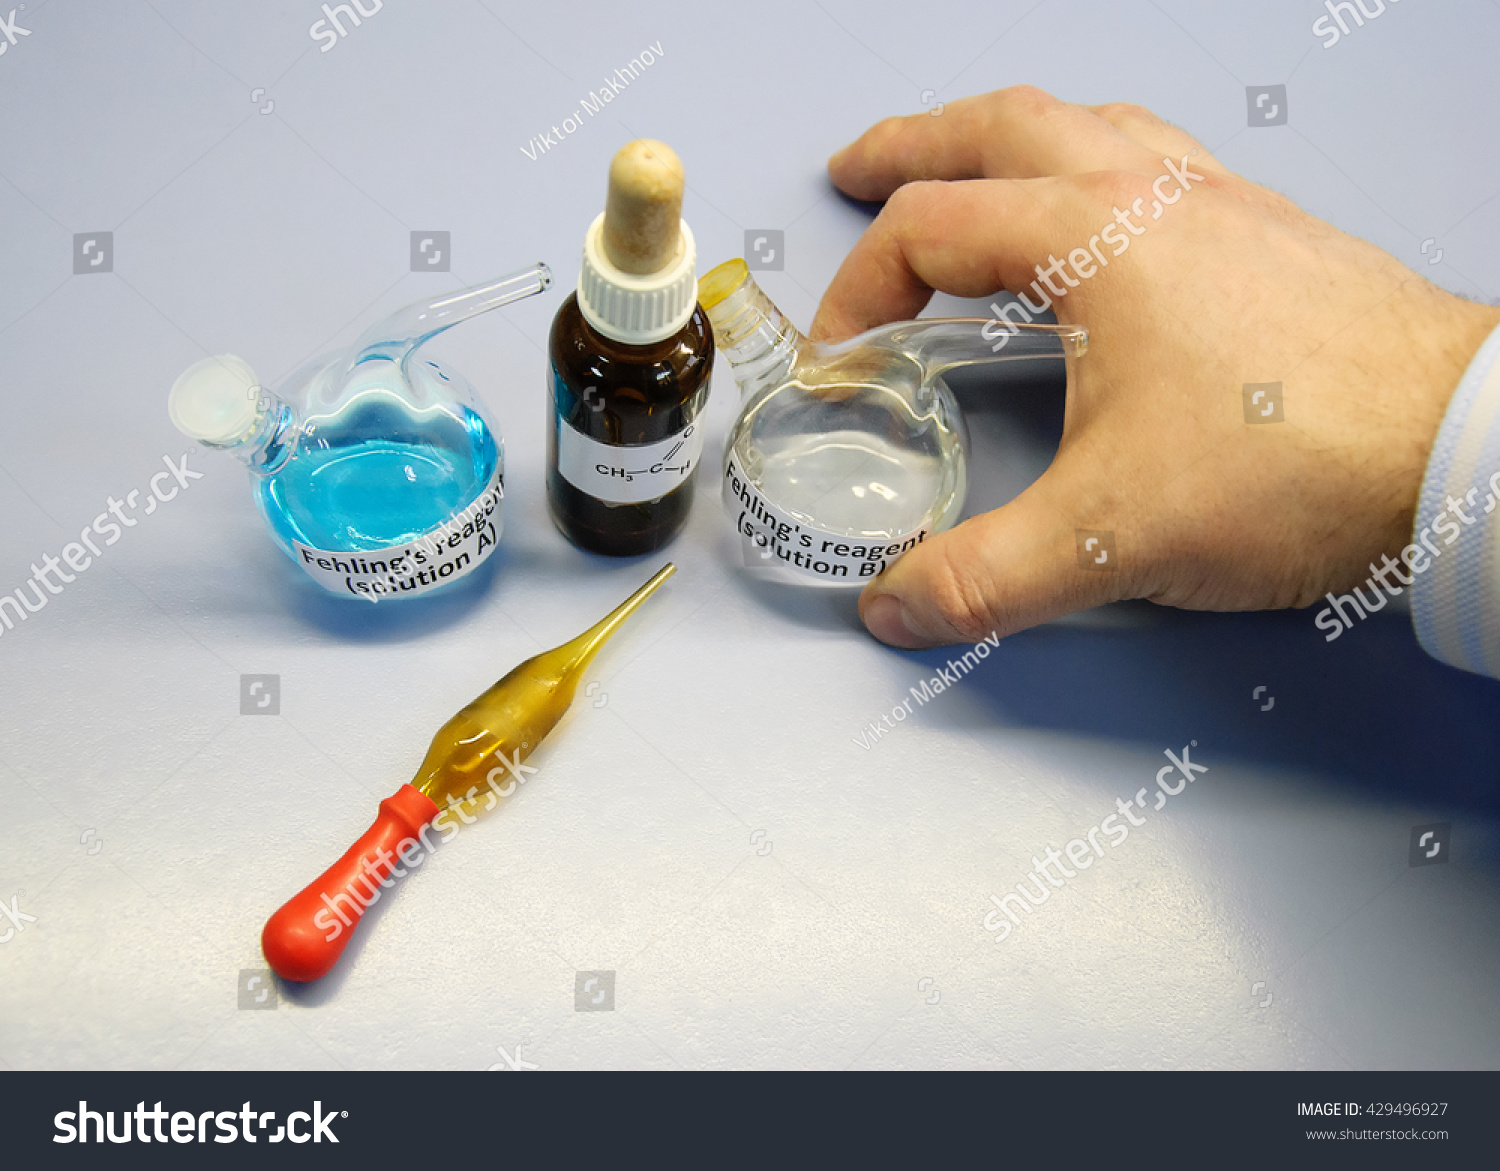 Scientist going to carry out an experiment using Fehling's A and Fehling's B solutions